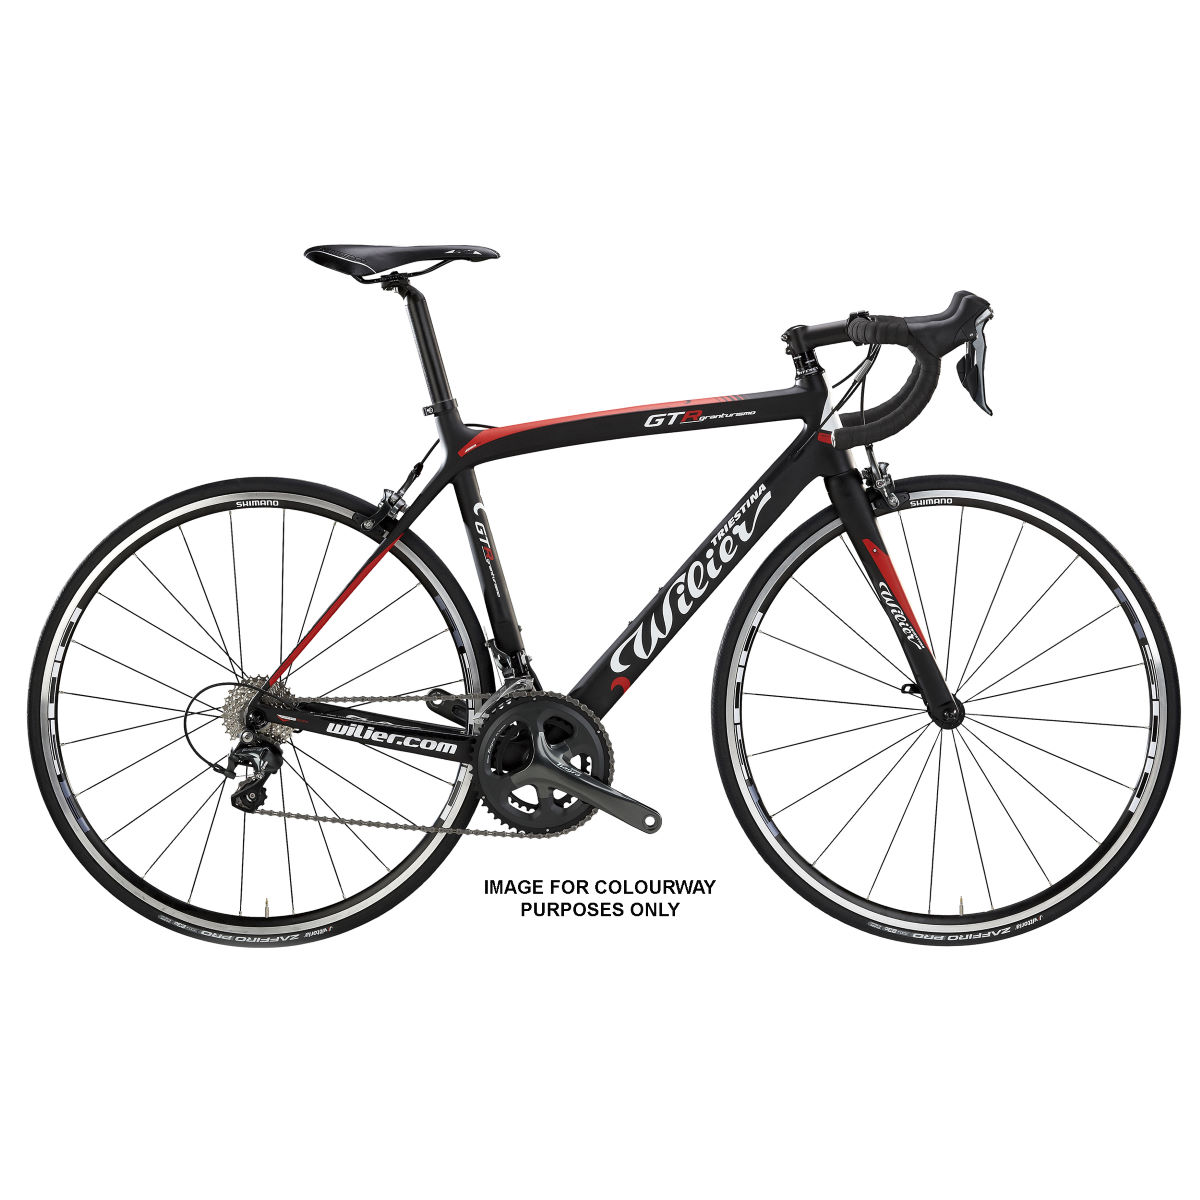 Vélo de route Wilier GTR (Veloce, 2017) - Large Stock Bike Rouge Vélos de route